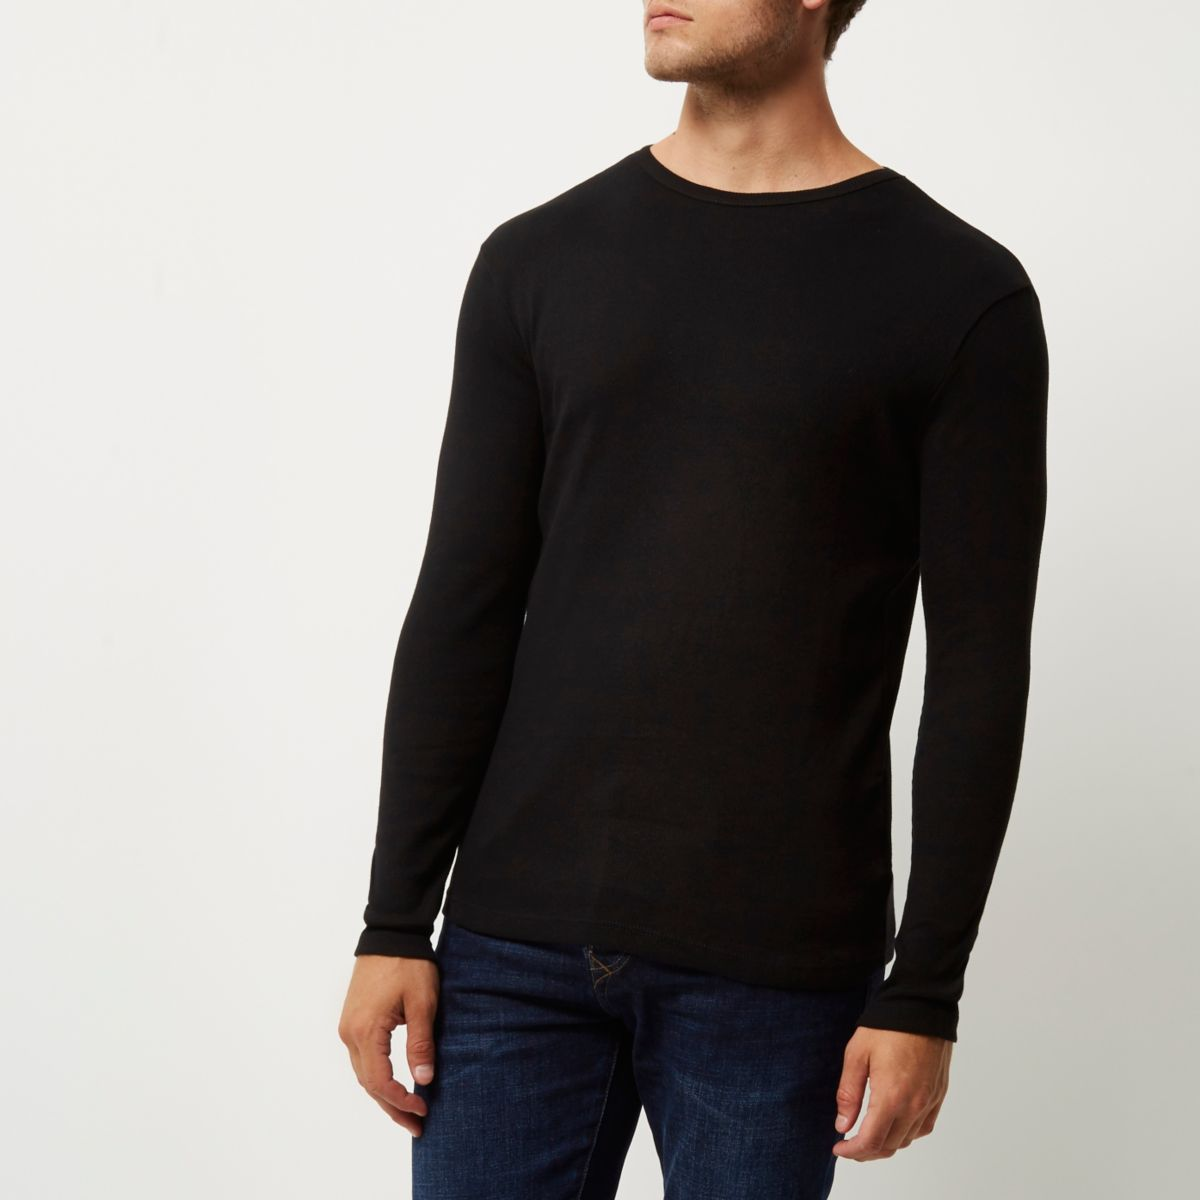 Find long black t-shirt at ShopStyle. Shop the latest collection of long black t-shirt from the most popular stores - all in one place.